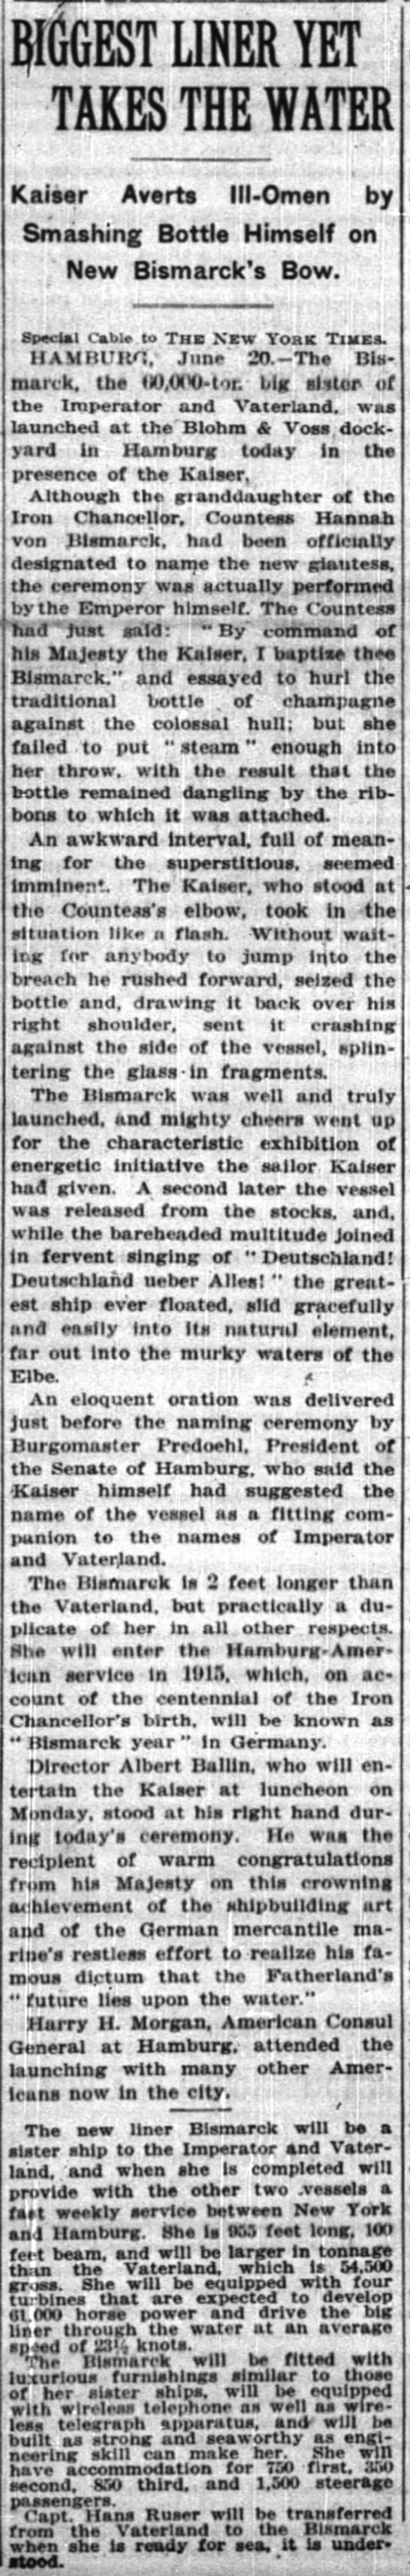 The launching of the Bismarck got awk. -